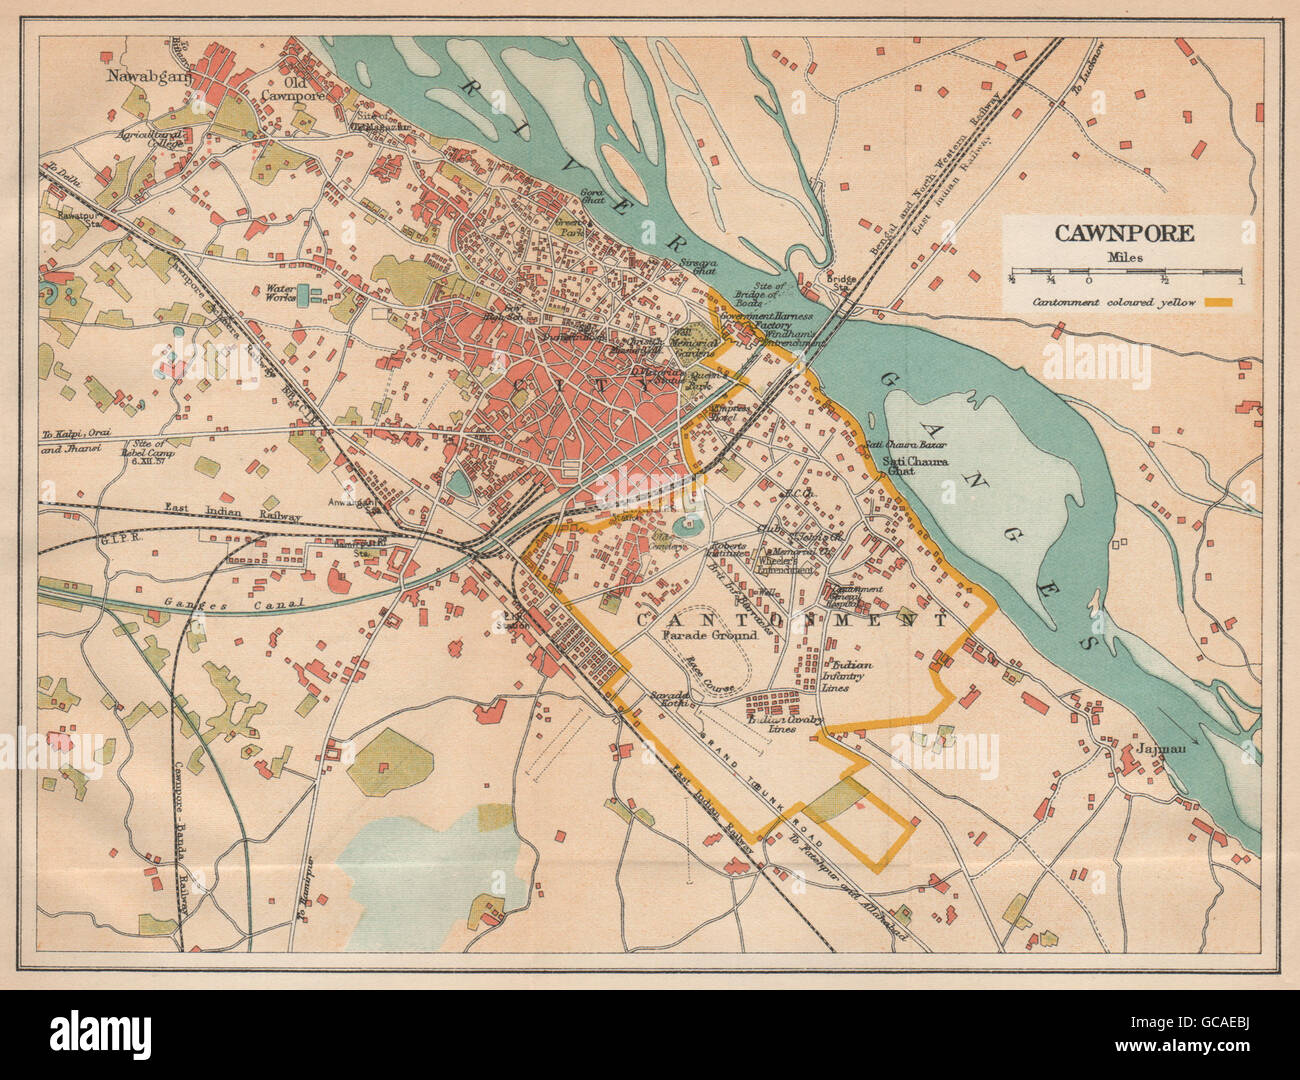 BRITISH INDIA Cawnpore Kanpur city plan showing cantonment 1929